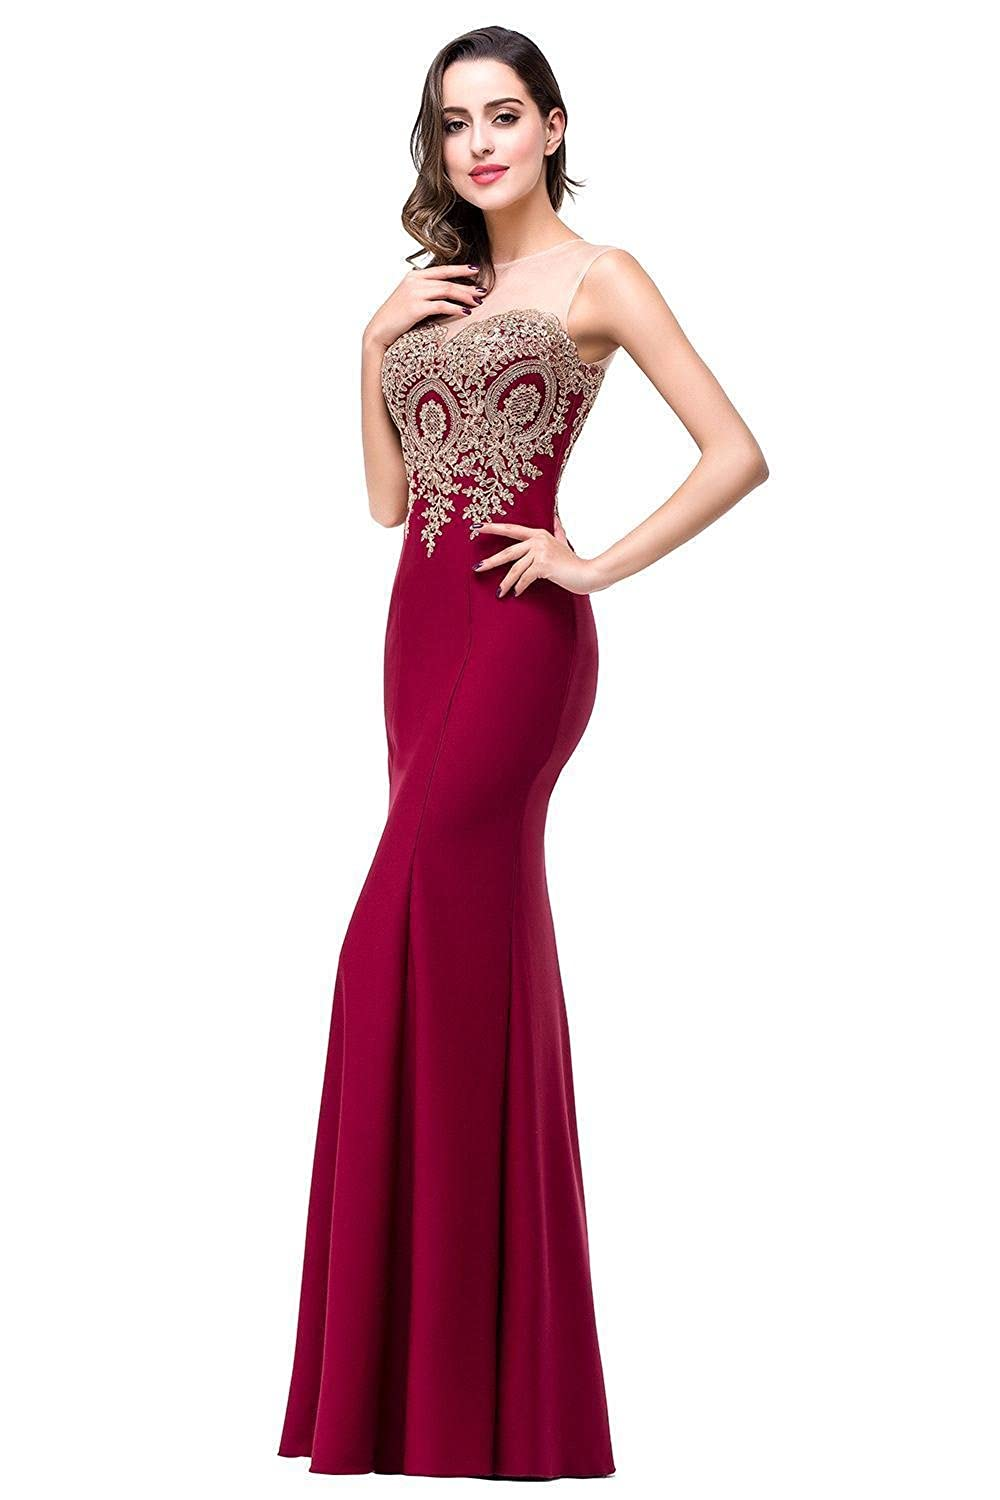 58f3f006ba8 Babyonline Women s Lace Applique Long Formal Mermaid Evening Prom Dresses  at Amazon Women s Clothing store